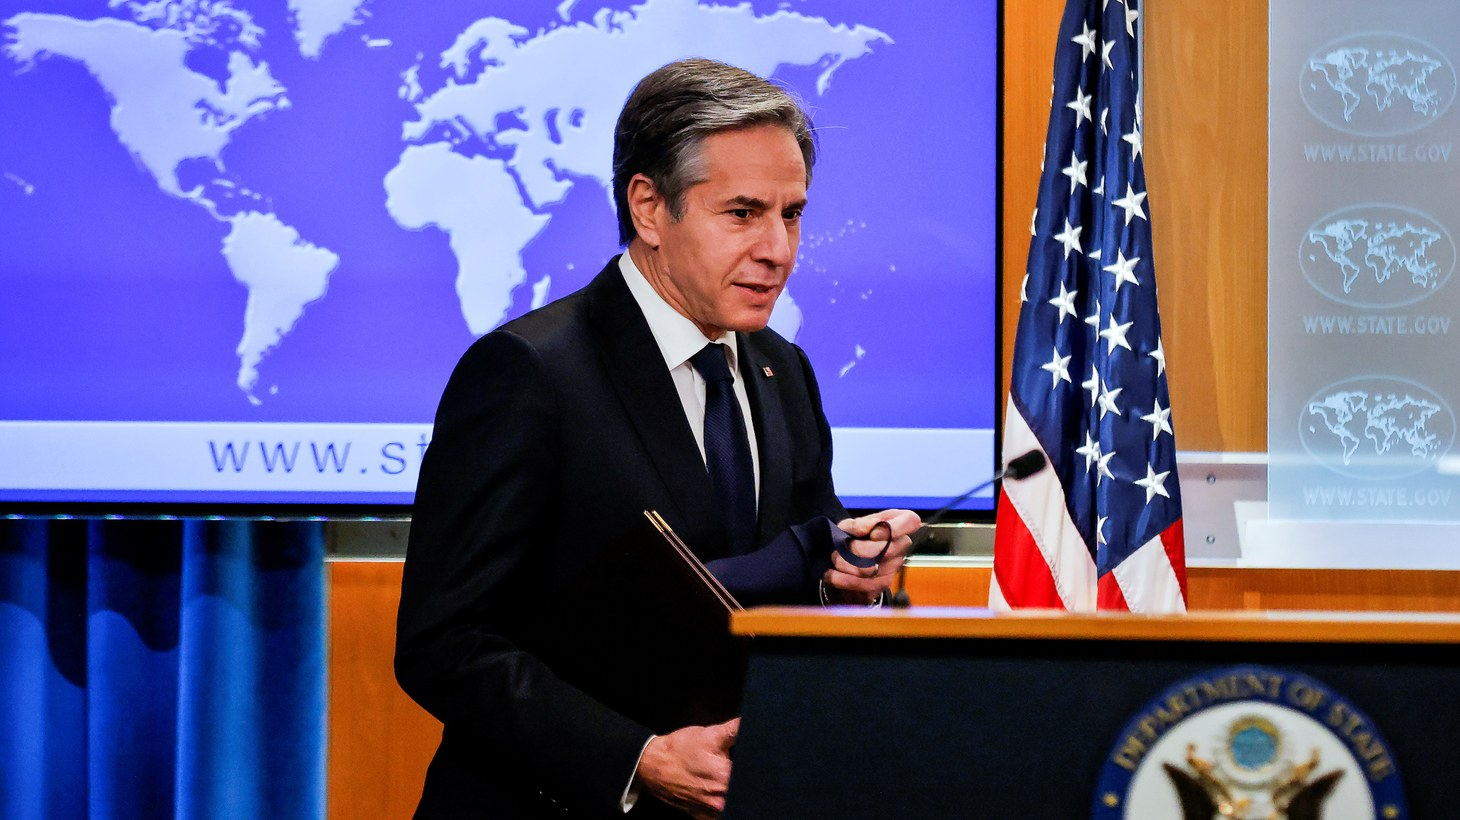 Newly confirmed U.S. Secretary of State Antony Blinken holds his first press briefing at the State Department in Washington, U.S., January 27, 2021.